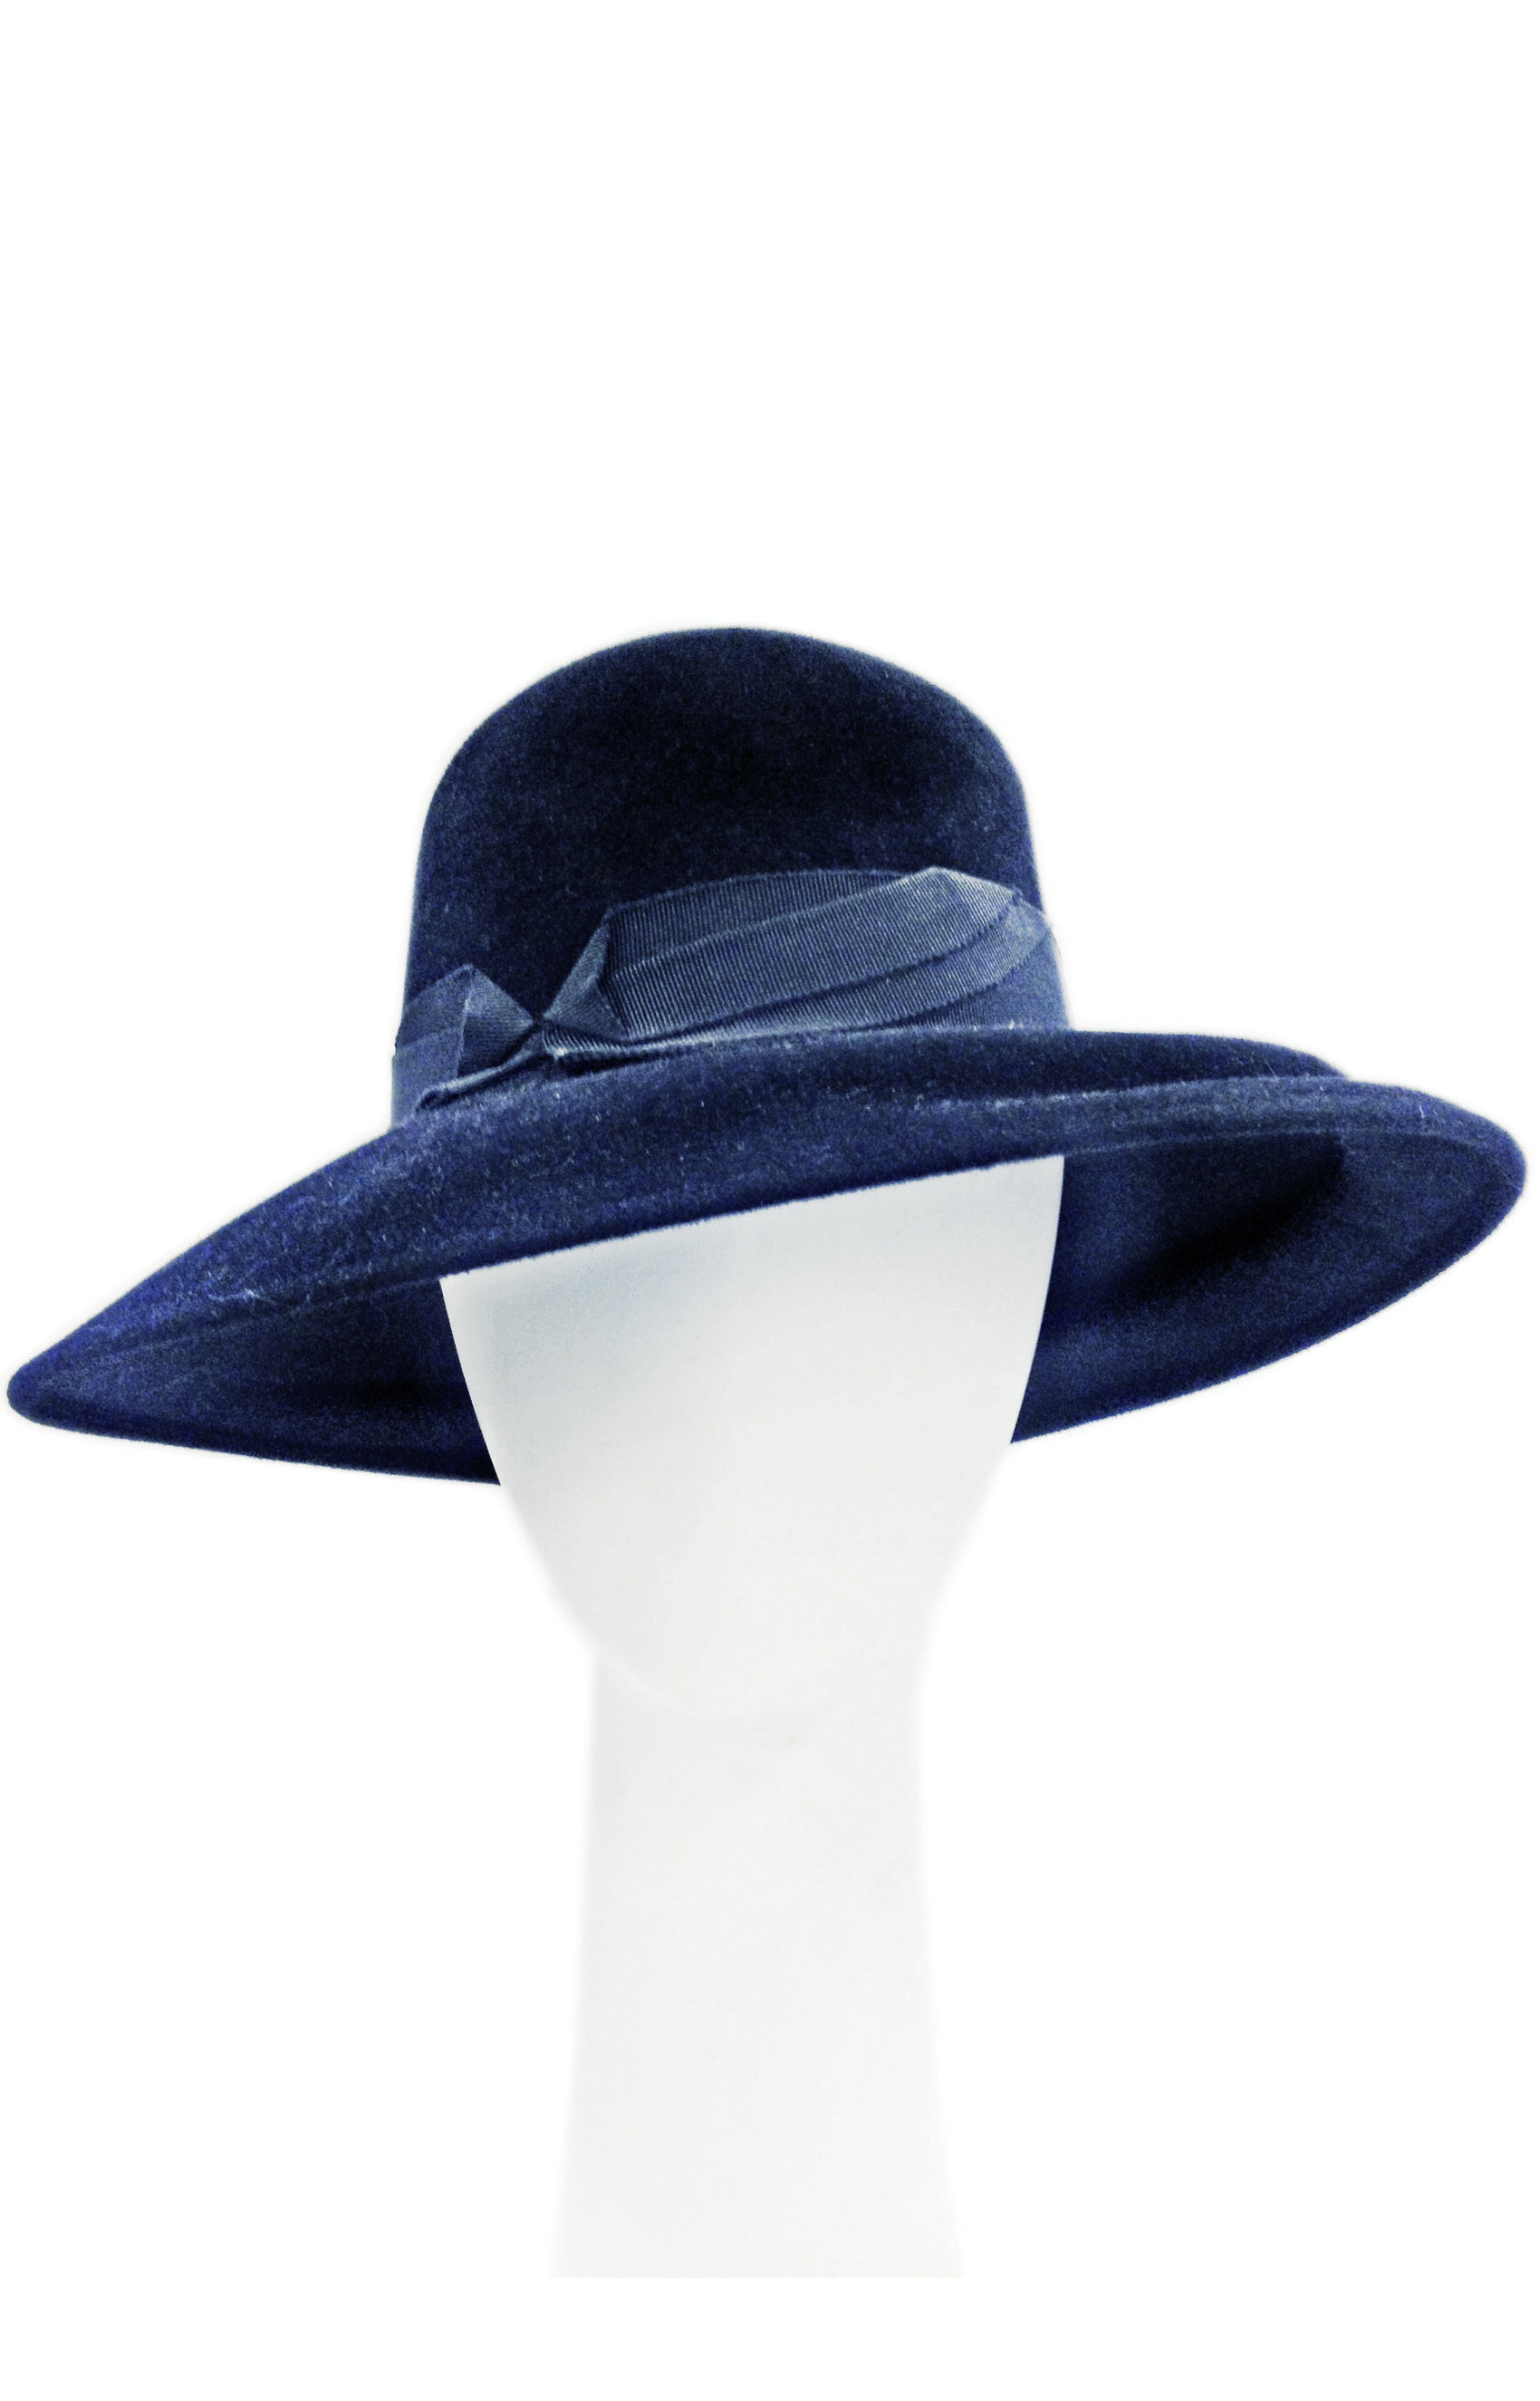 Céline Robert<br>Women's hat 05